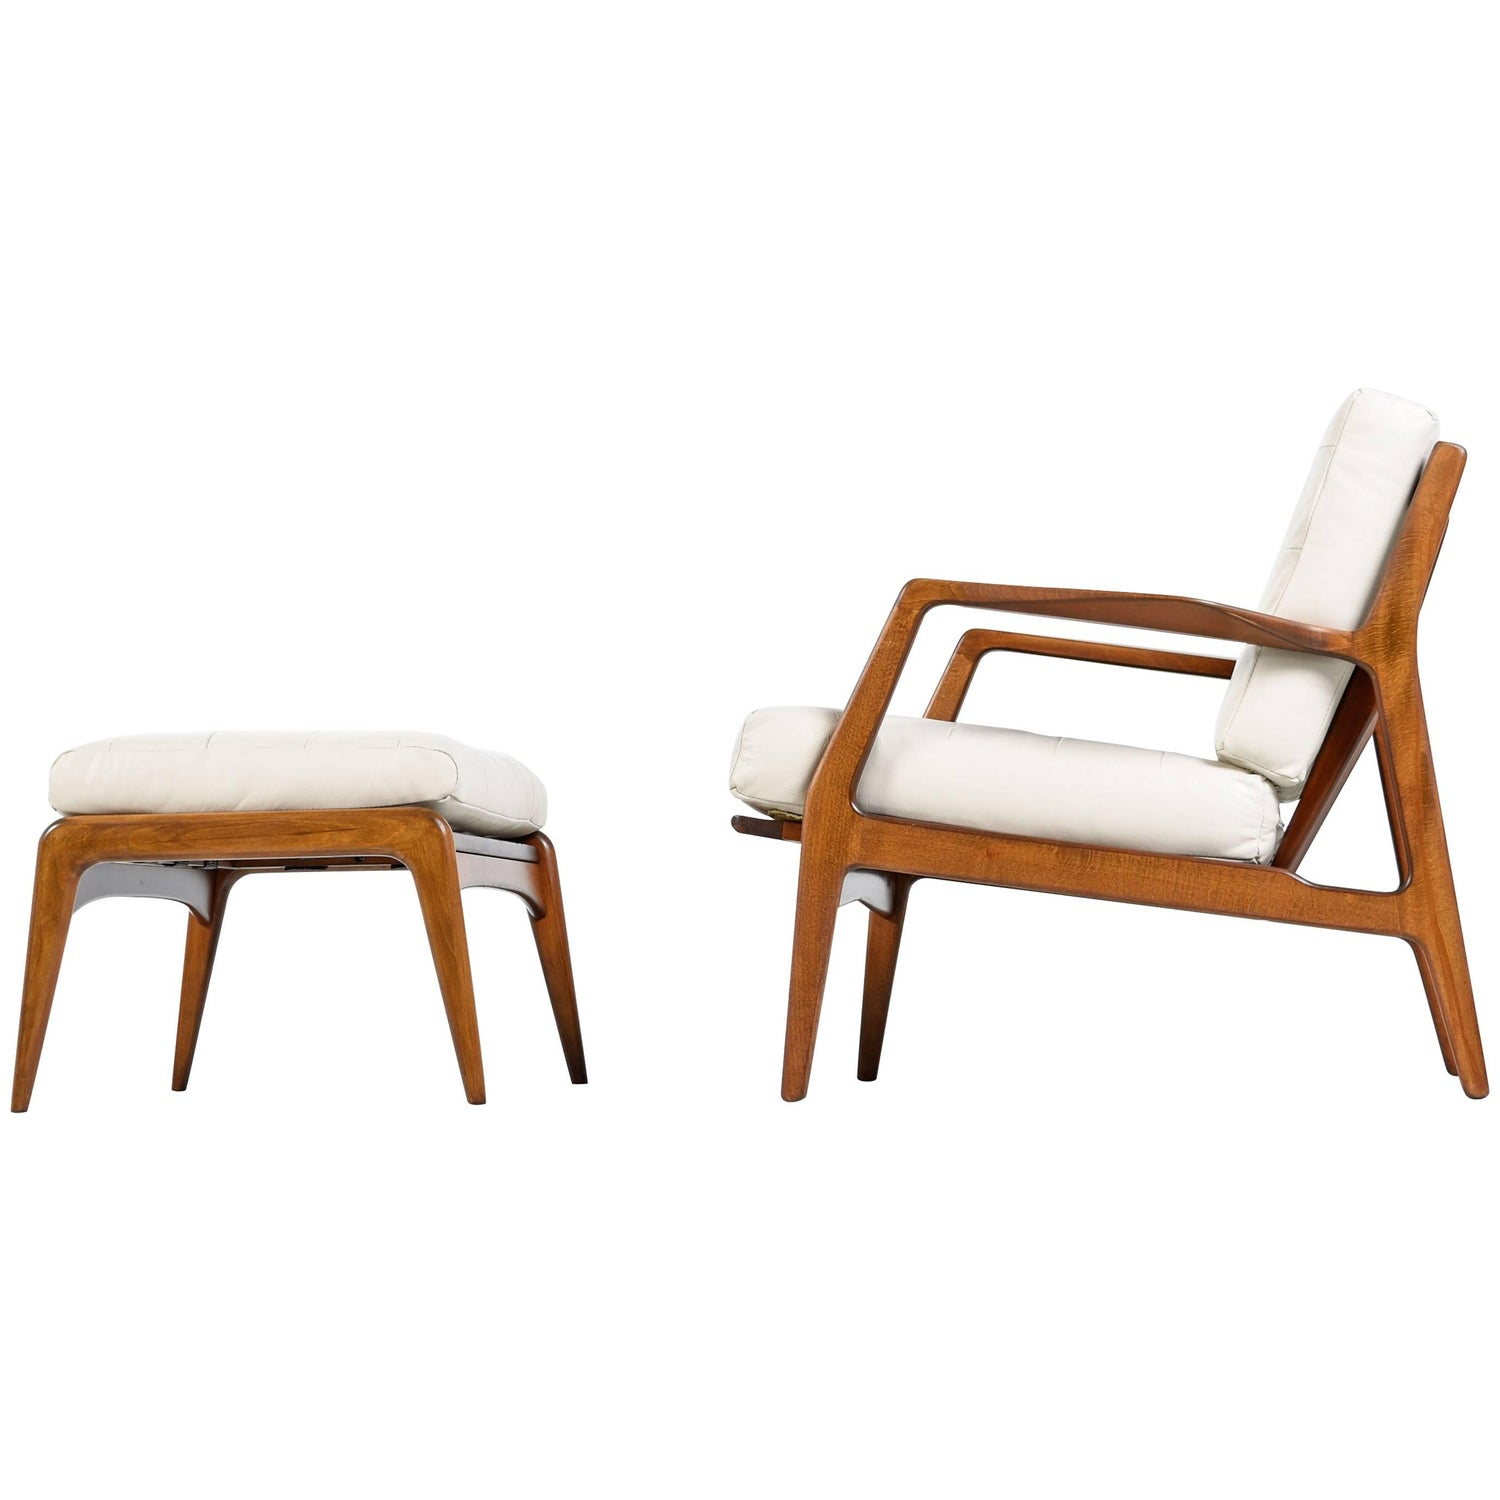 This sculptural pair of lounge chairs by ib kofod larsen is no longer - Ib Kofod Larsen Bone Ivory Leather Danish Chair And Ottoman